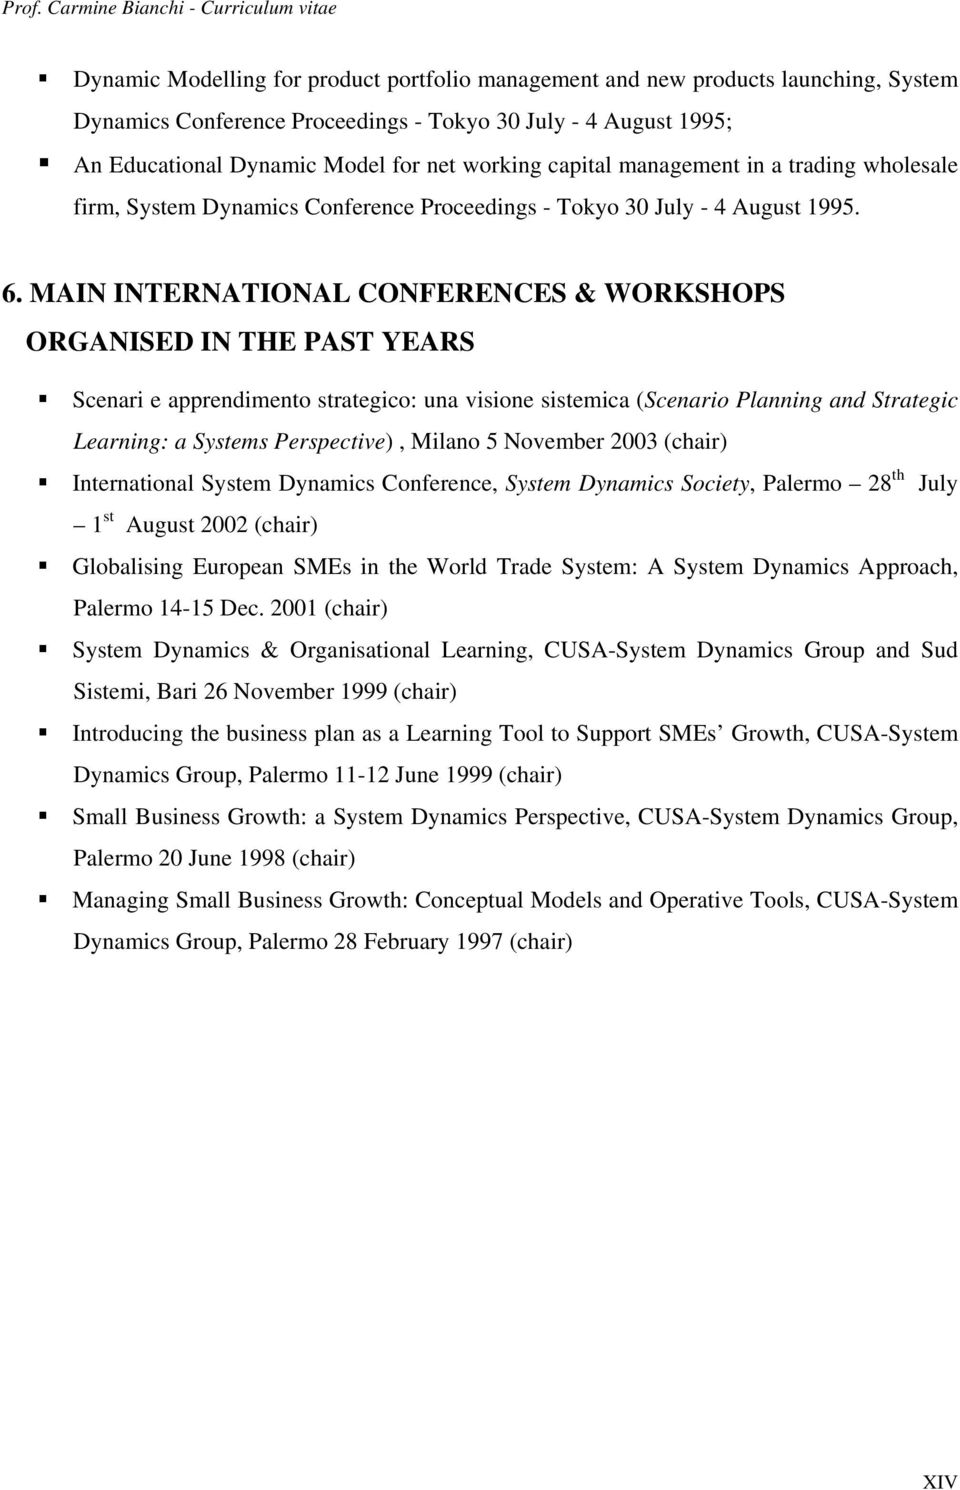 MAIN INTERNATIONAL CONFERENCES & WORKSHOPS ORGANISED IN THE PAST YEARS Scenari e apprendimento strategico: una visione sistemica (Scenario Planning and Strategic Learning: a Systems Perspective),